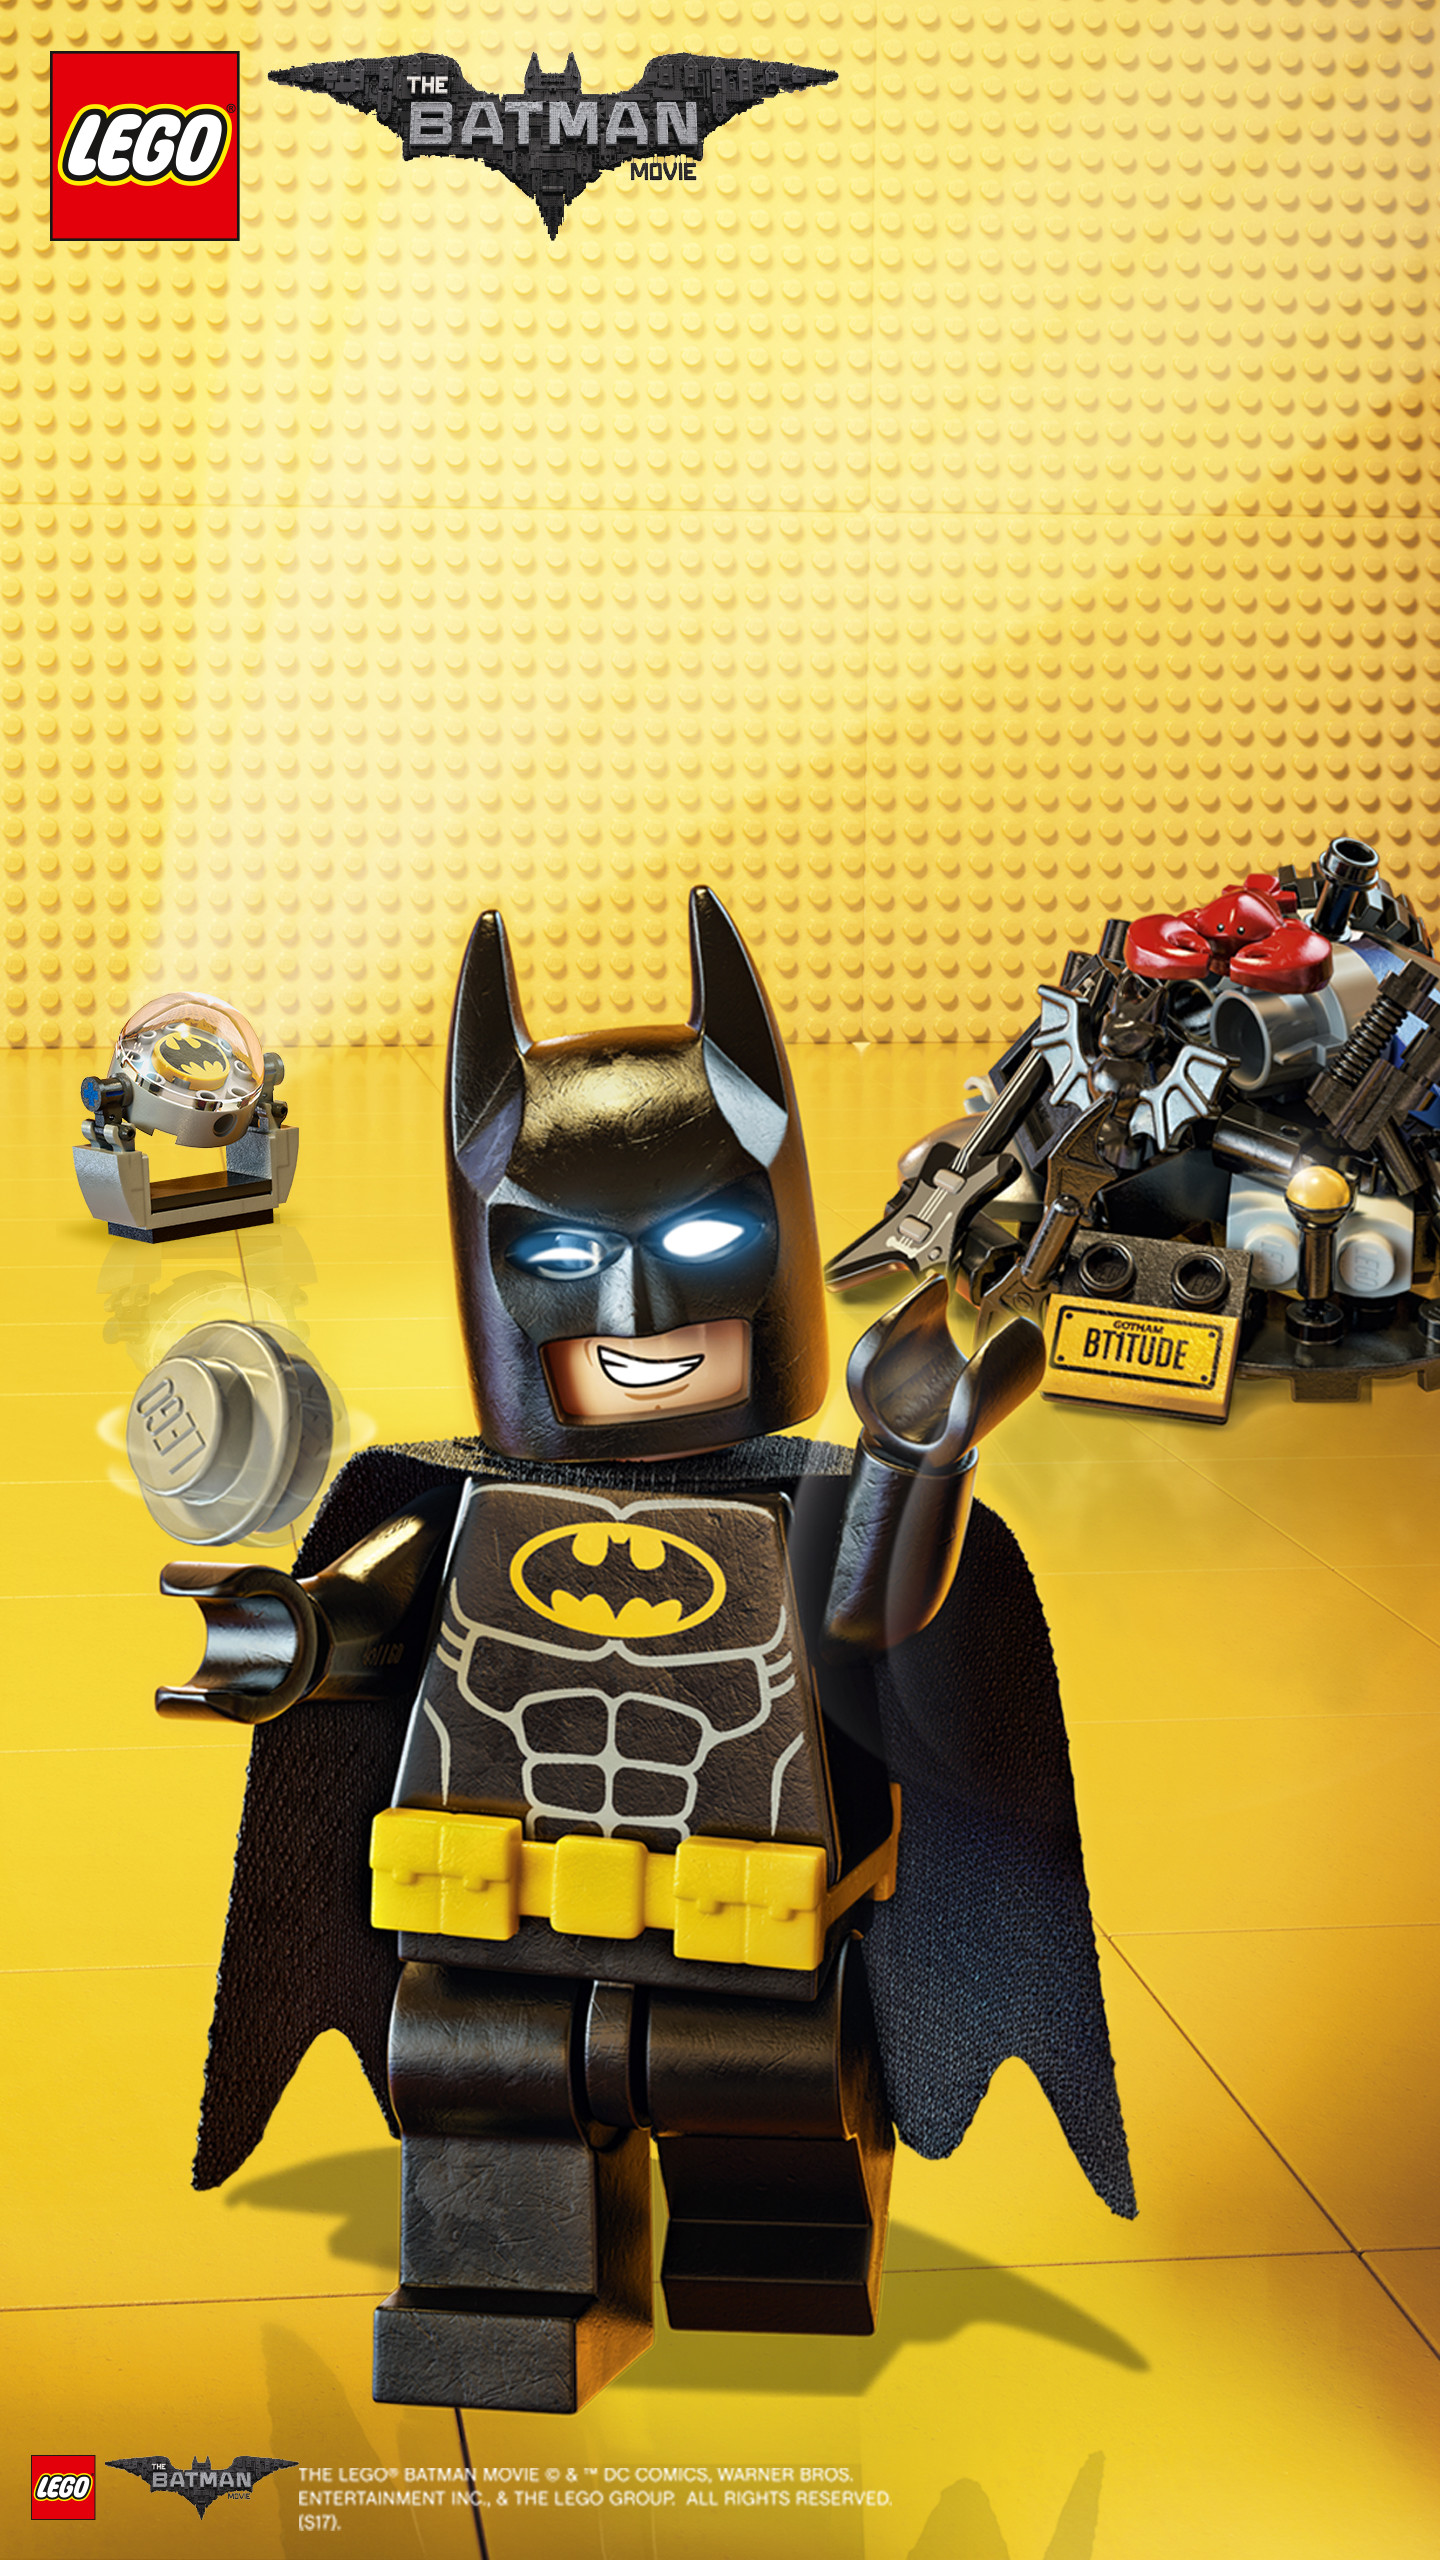 The lego batman movie wallpapers 80 images - Lego wallpaper ...